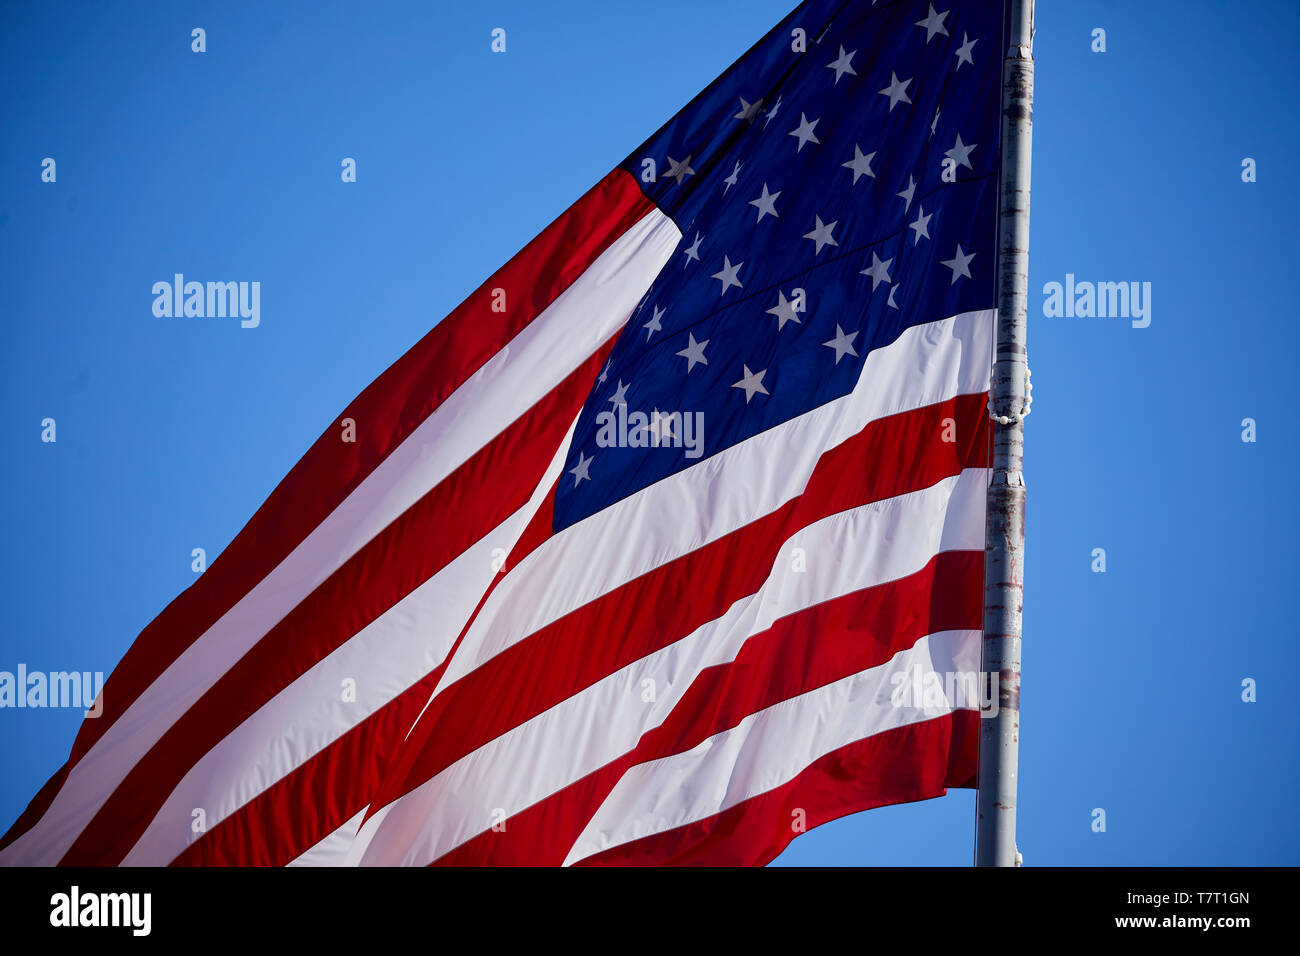 why is the us flag red white and blue